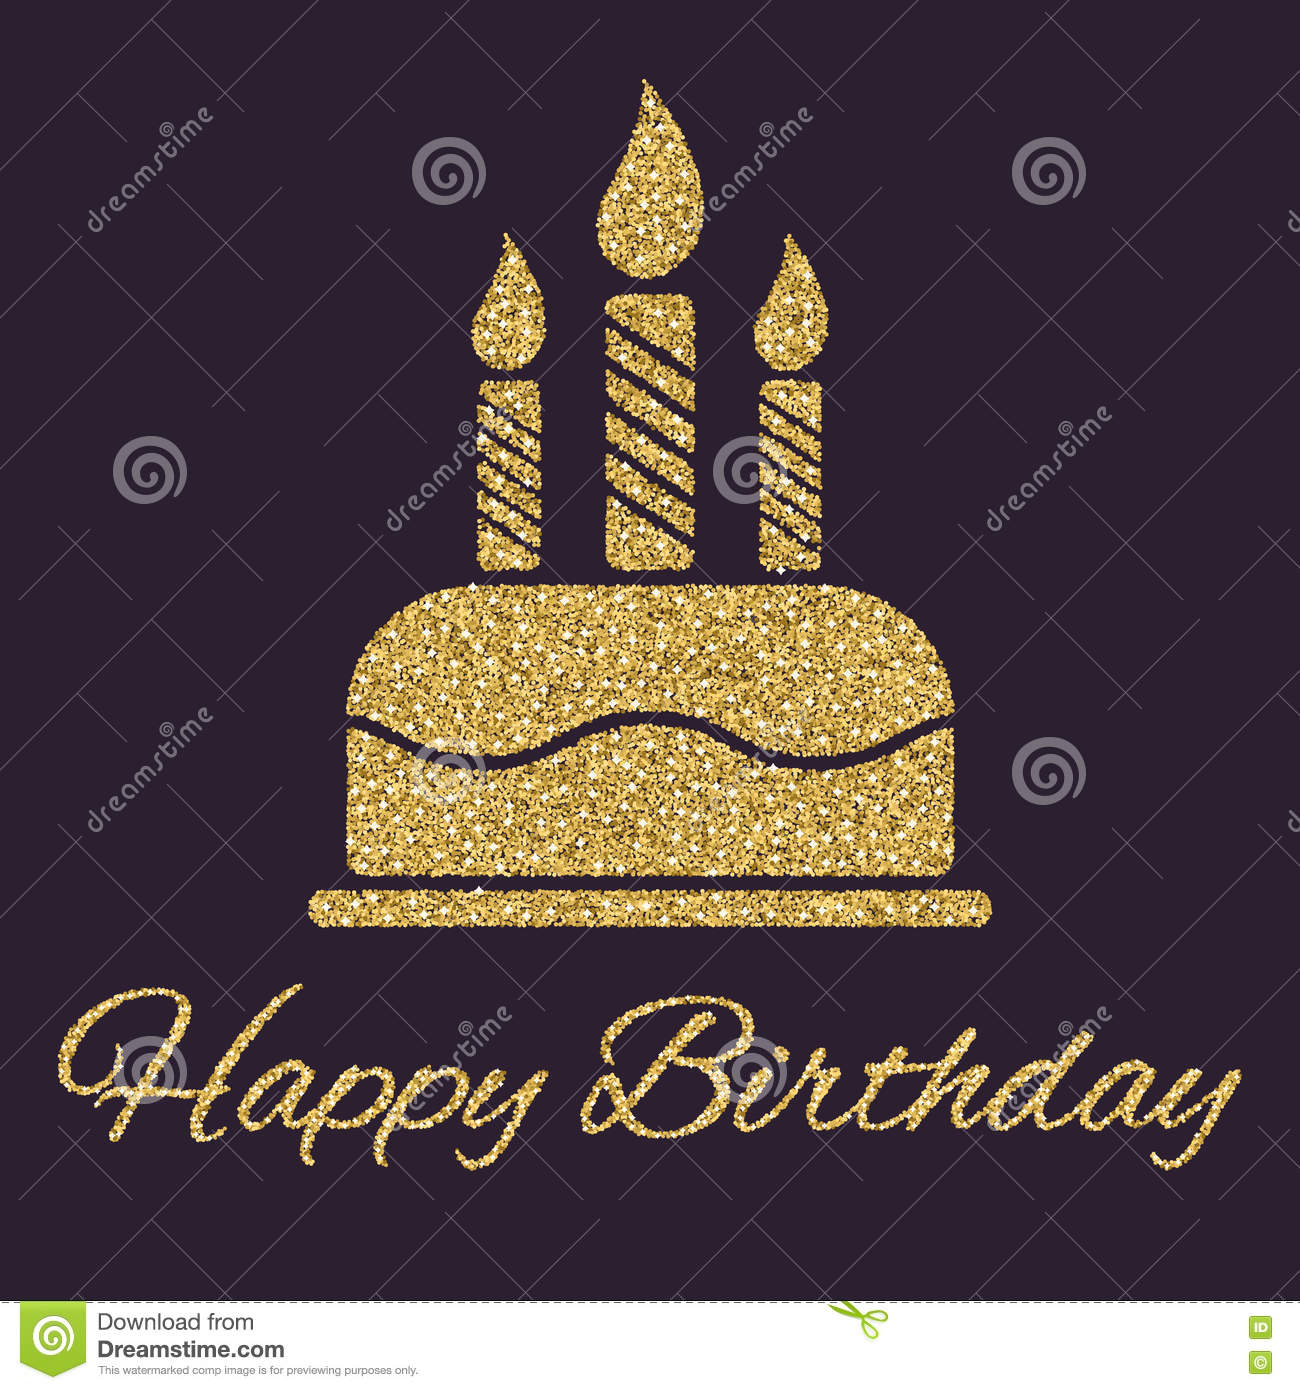 The birthday cake with candles dessert symbol gold sparkles and the birthday cake with candles dessert symbol gold sparkles and glitter biocorpaavc